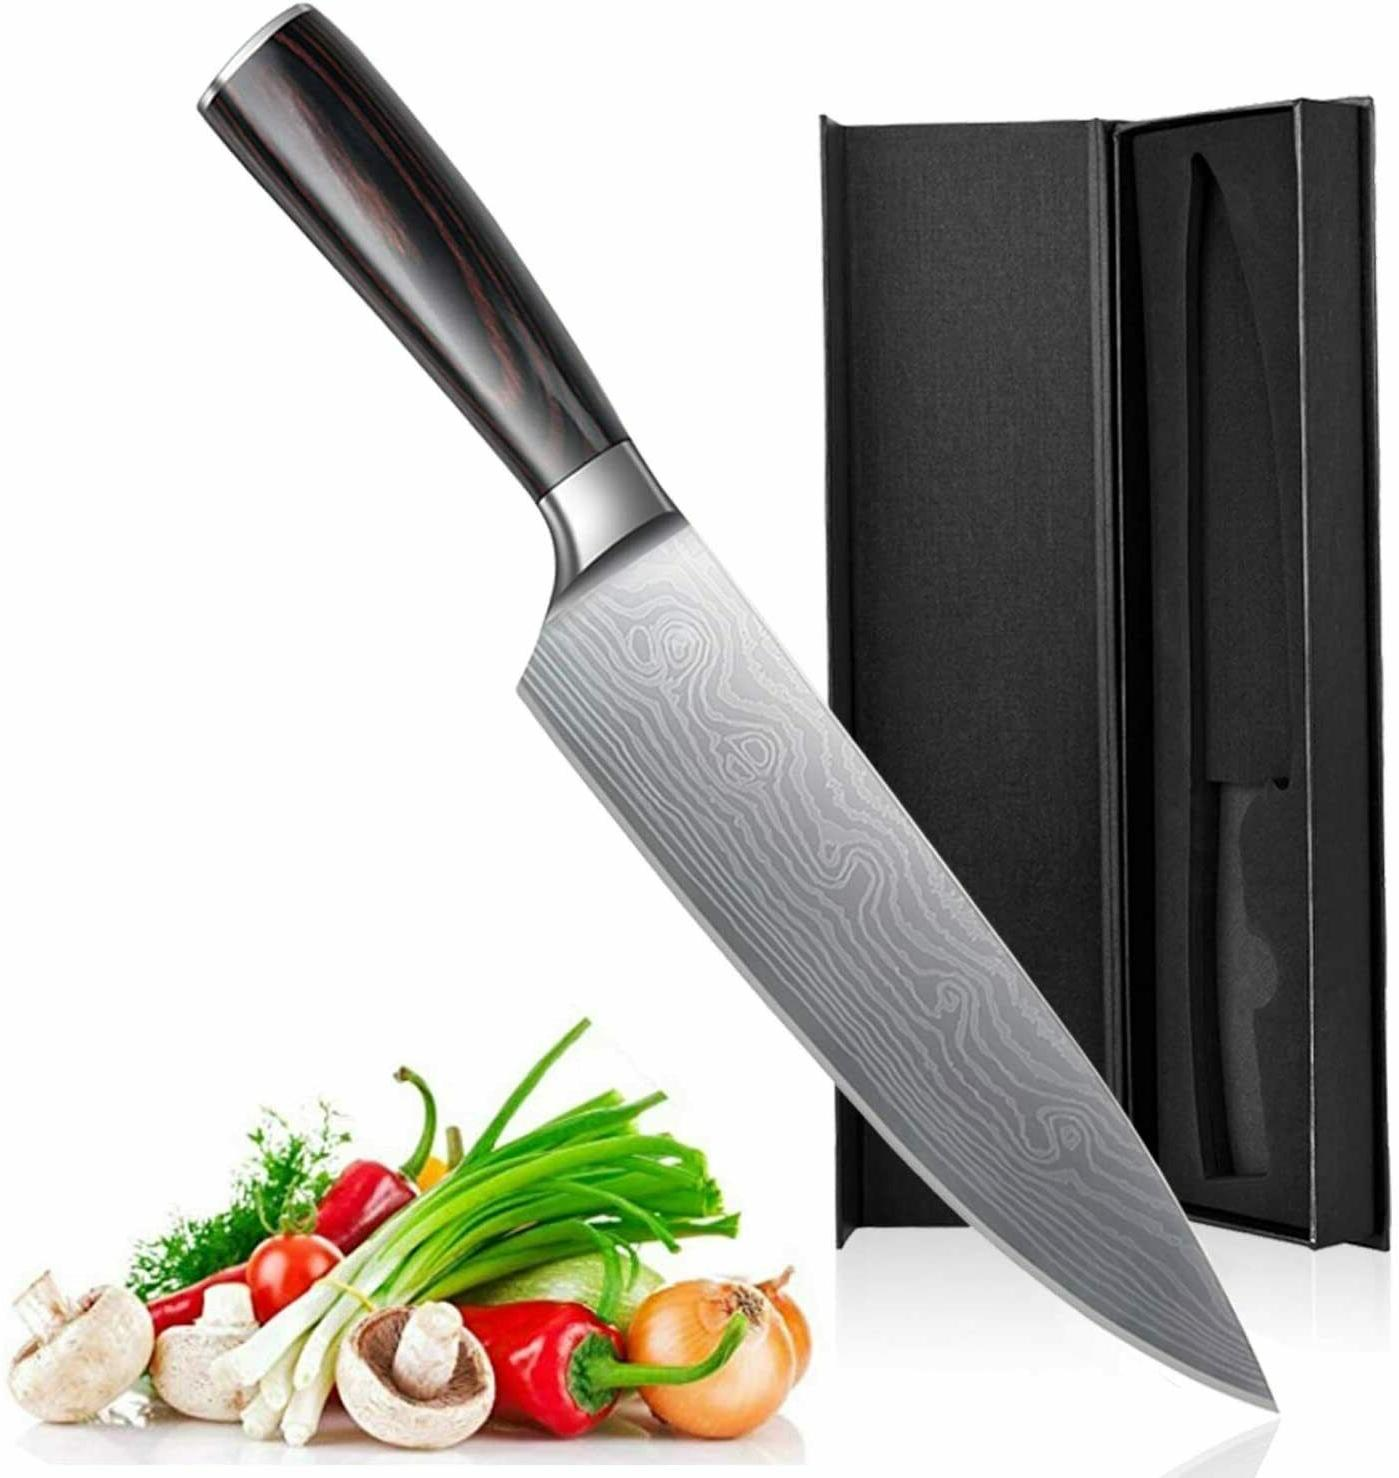 Chef Knife High Stainless